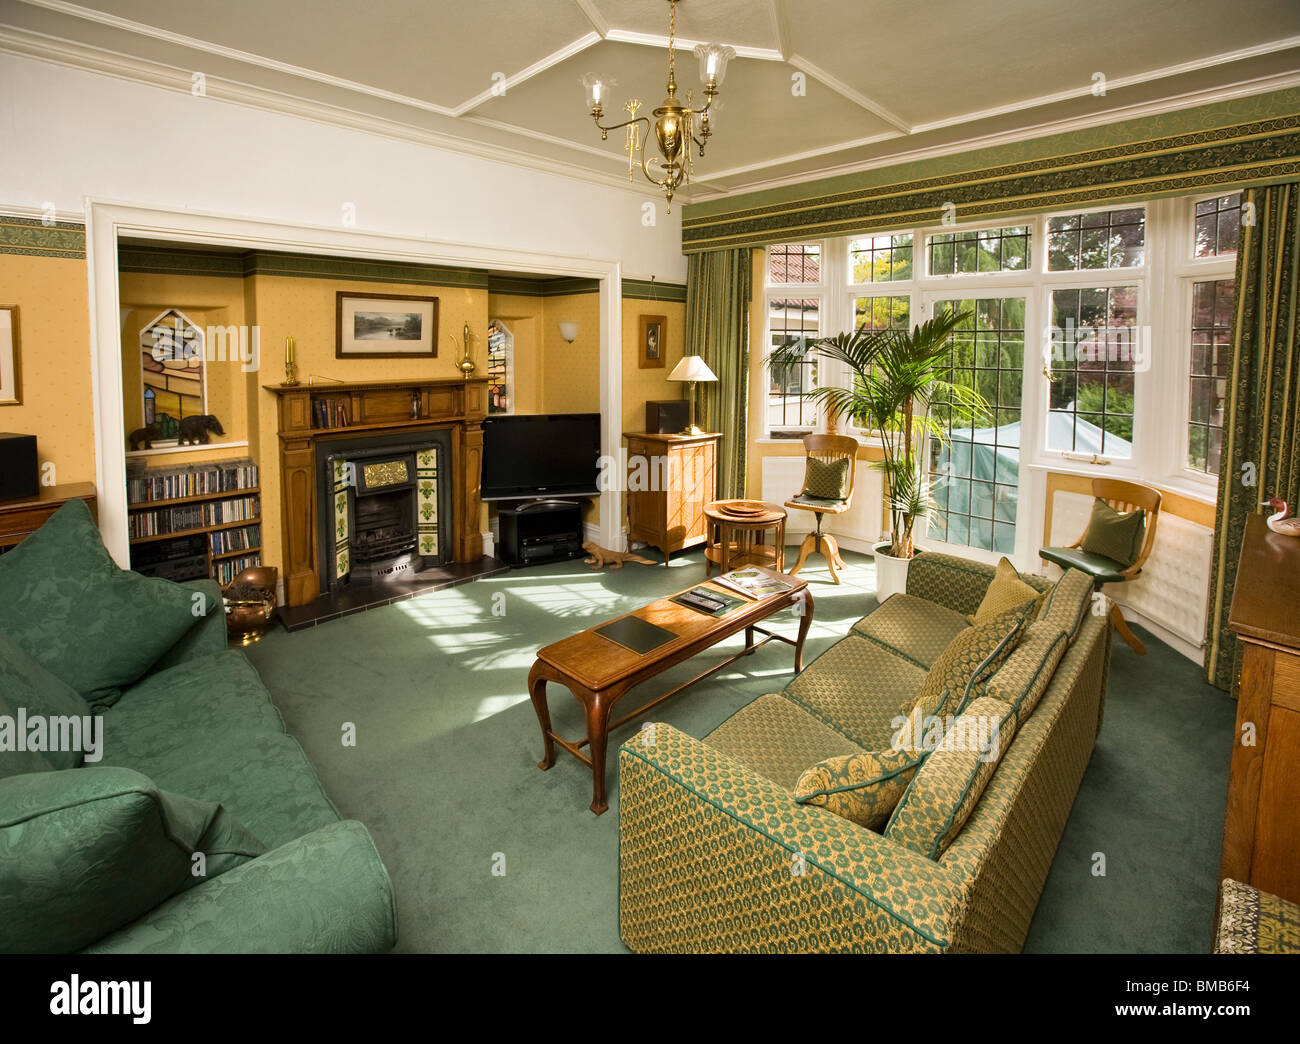 Houses Edwardian Arts And Crafts House Sitting Room Interior Stock Photo Royalty Free Image